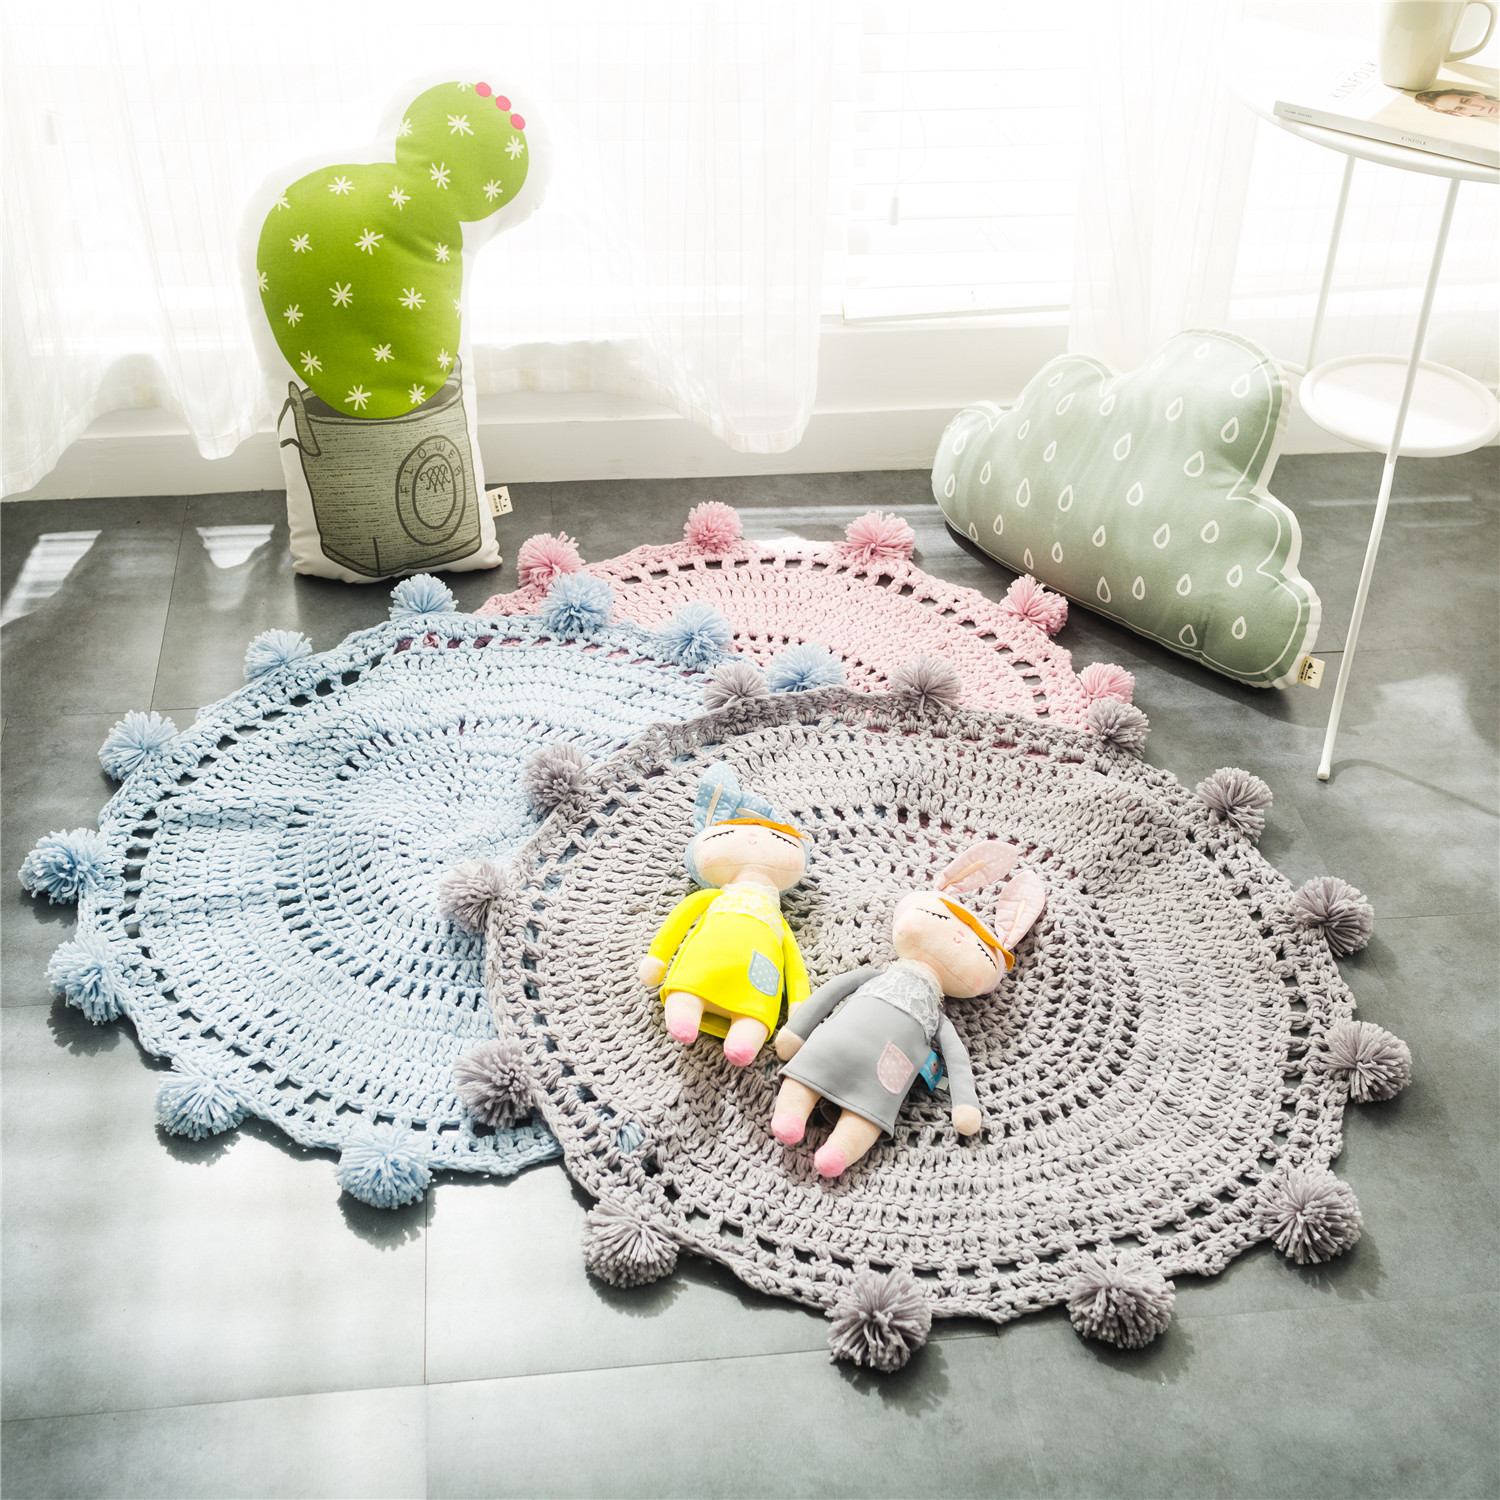 Hand Knitted Wool Baby Play Mat Playmat Kids Toy Storage Bag Portable Carry Playing Mats Room Decor Floor Mat 80cm